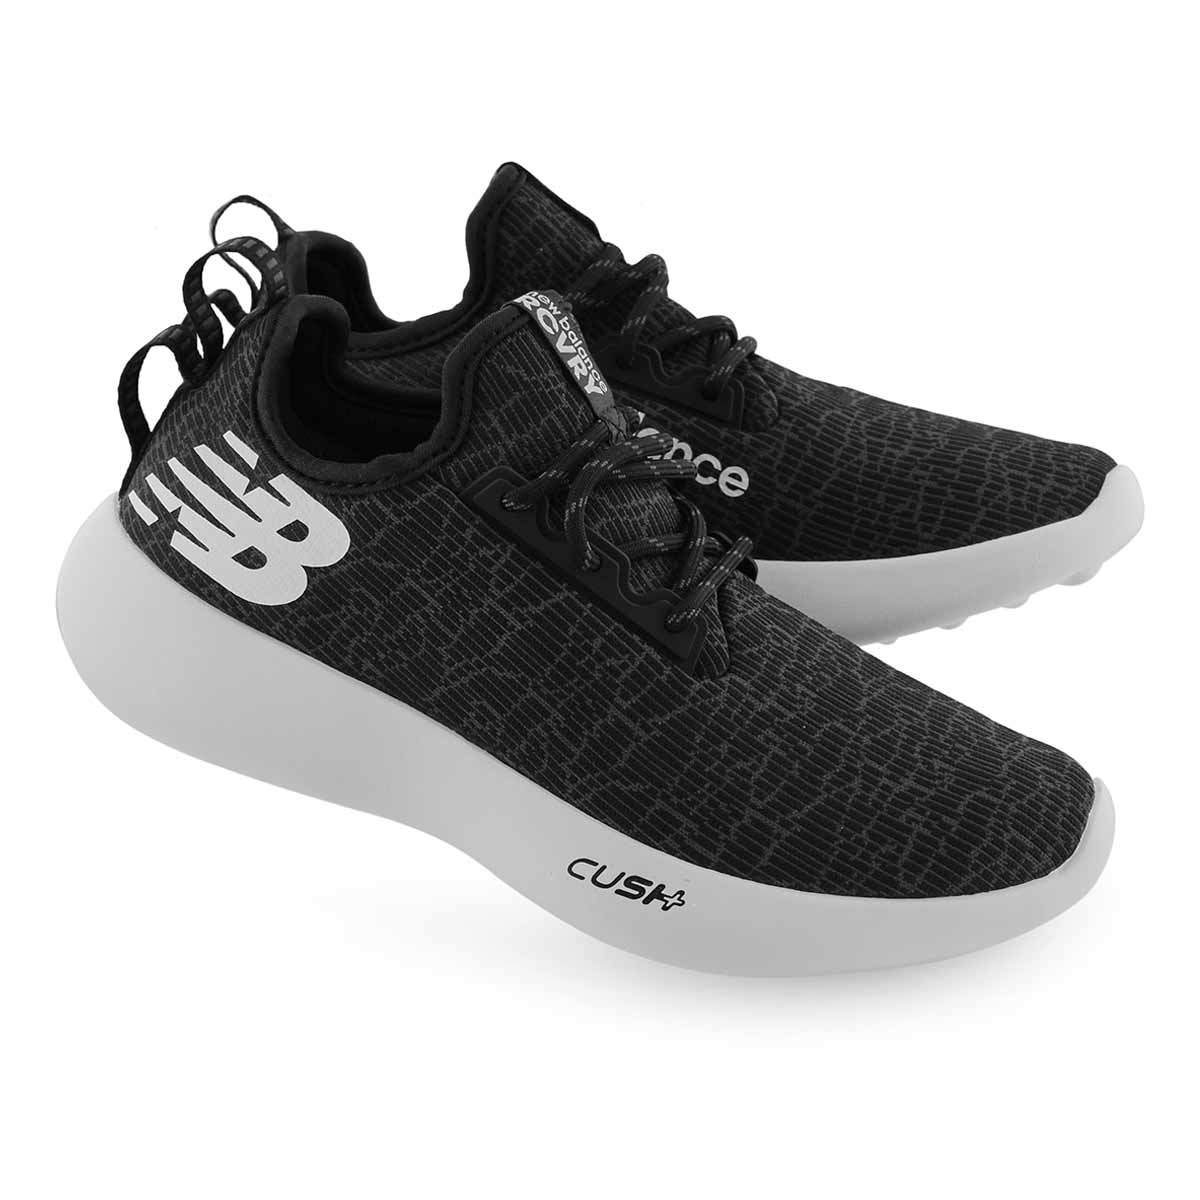 Women's RECOVERY black/white lace up sneakers